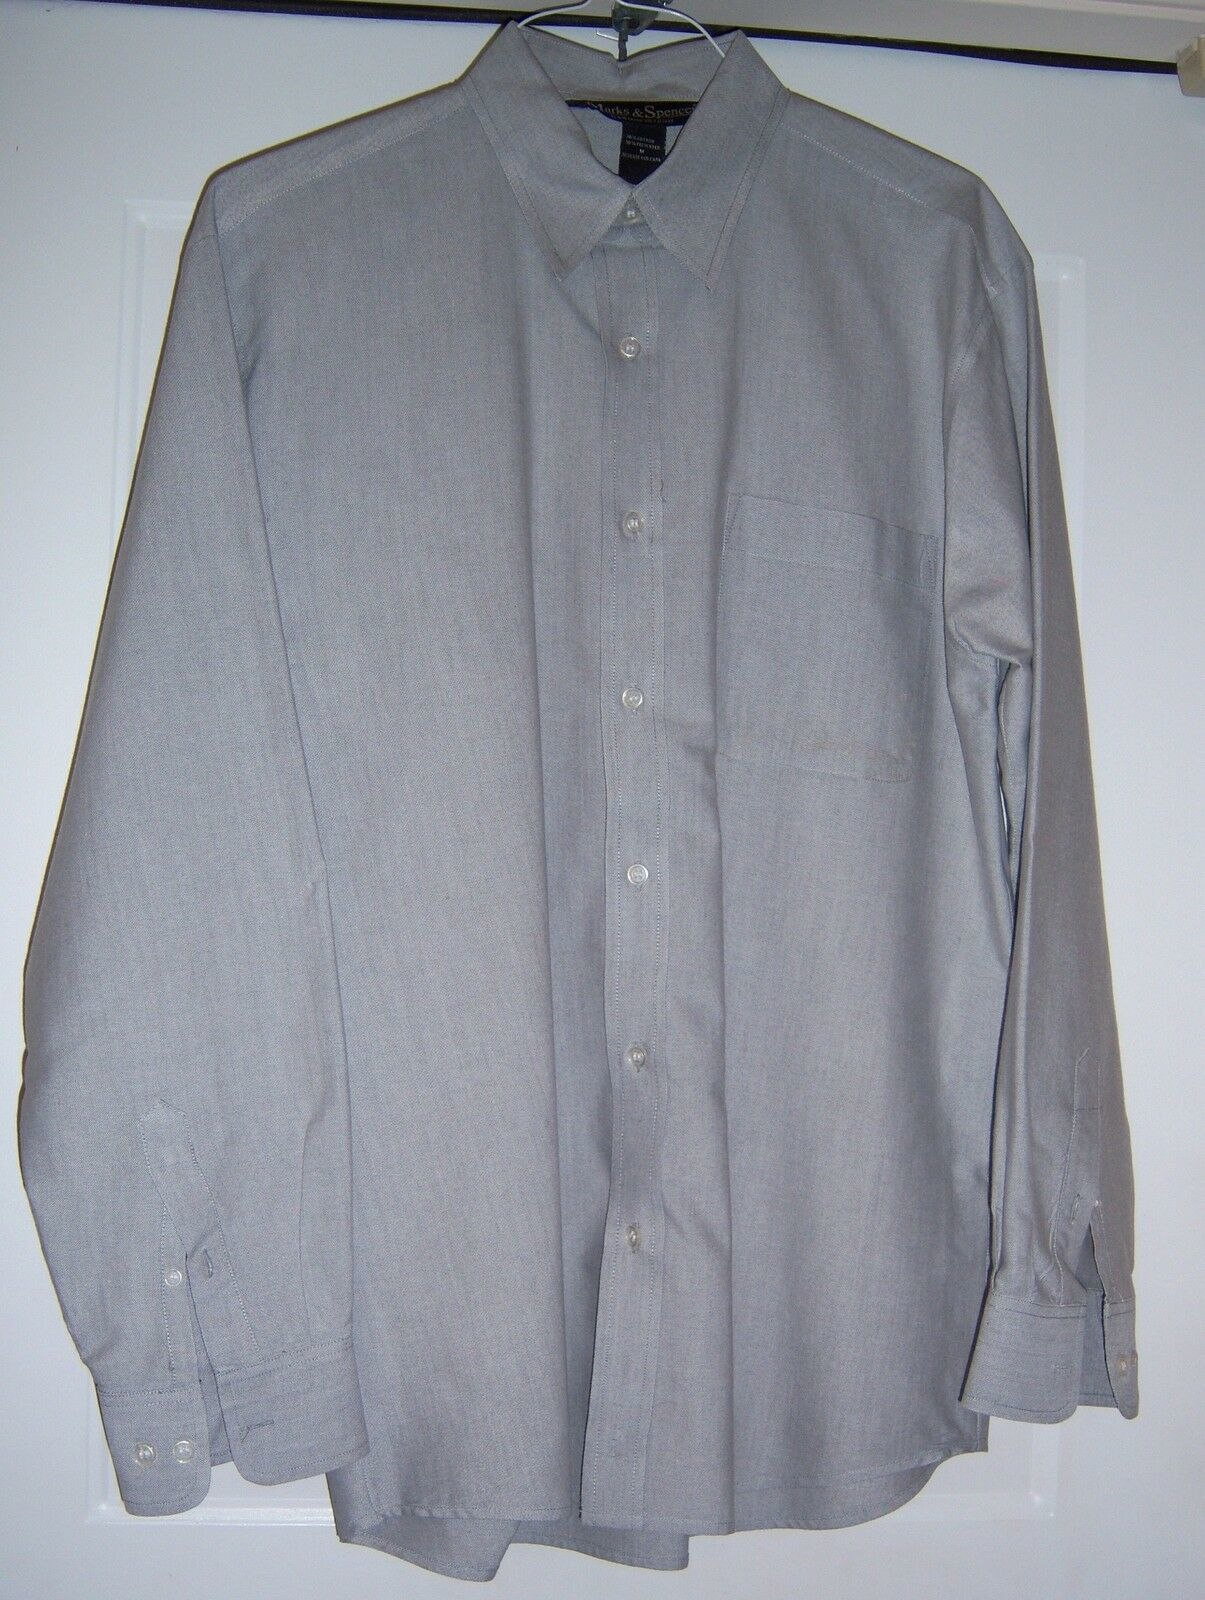 MARKS AND SPENCER Oxford Style Shirt Cotton blend L/S Gray Men's M